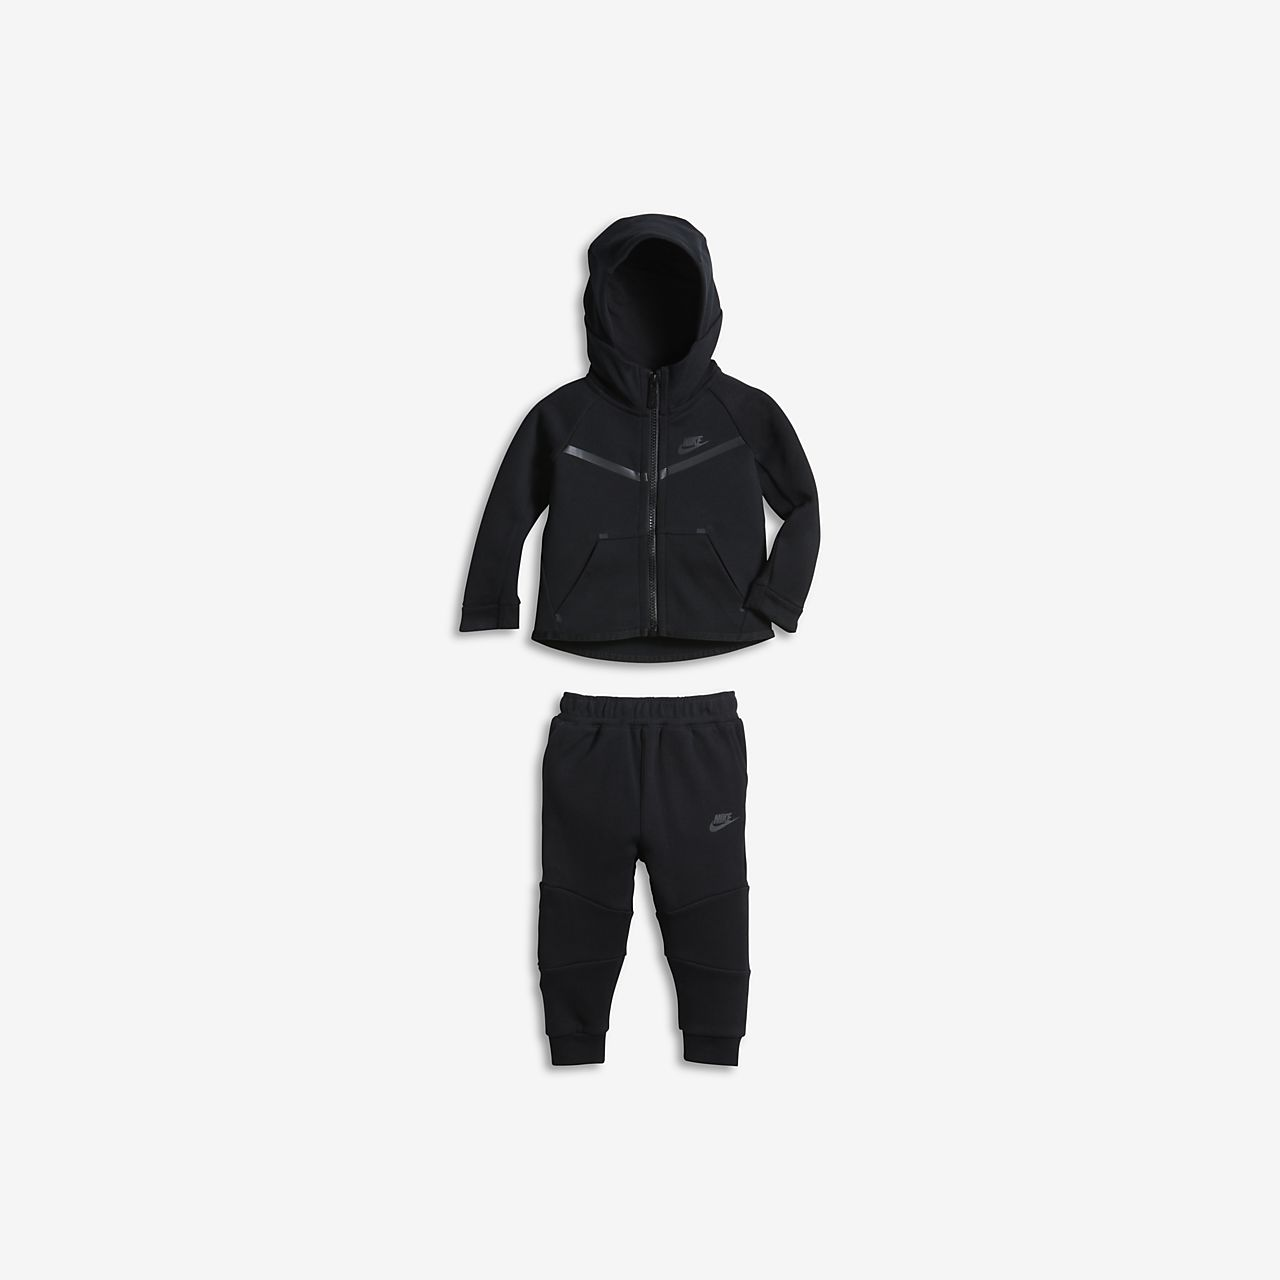 Nike Tech Fleece 2-teiliges Set für Kleinkinder